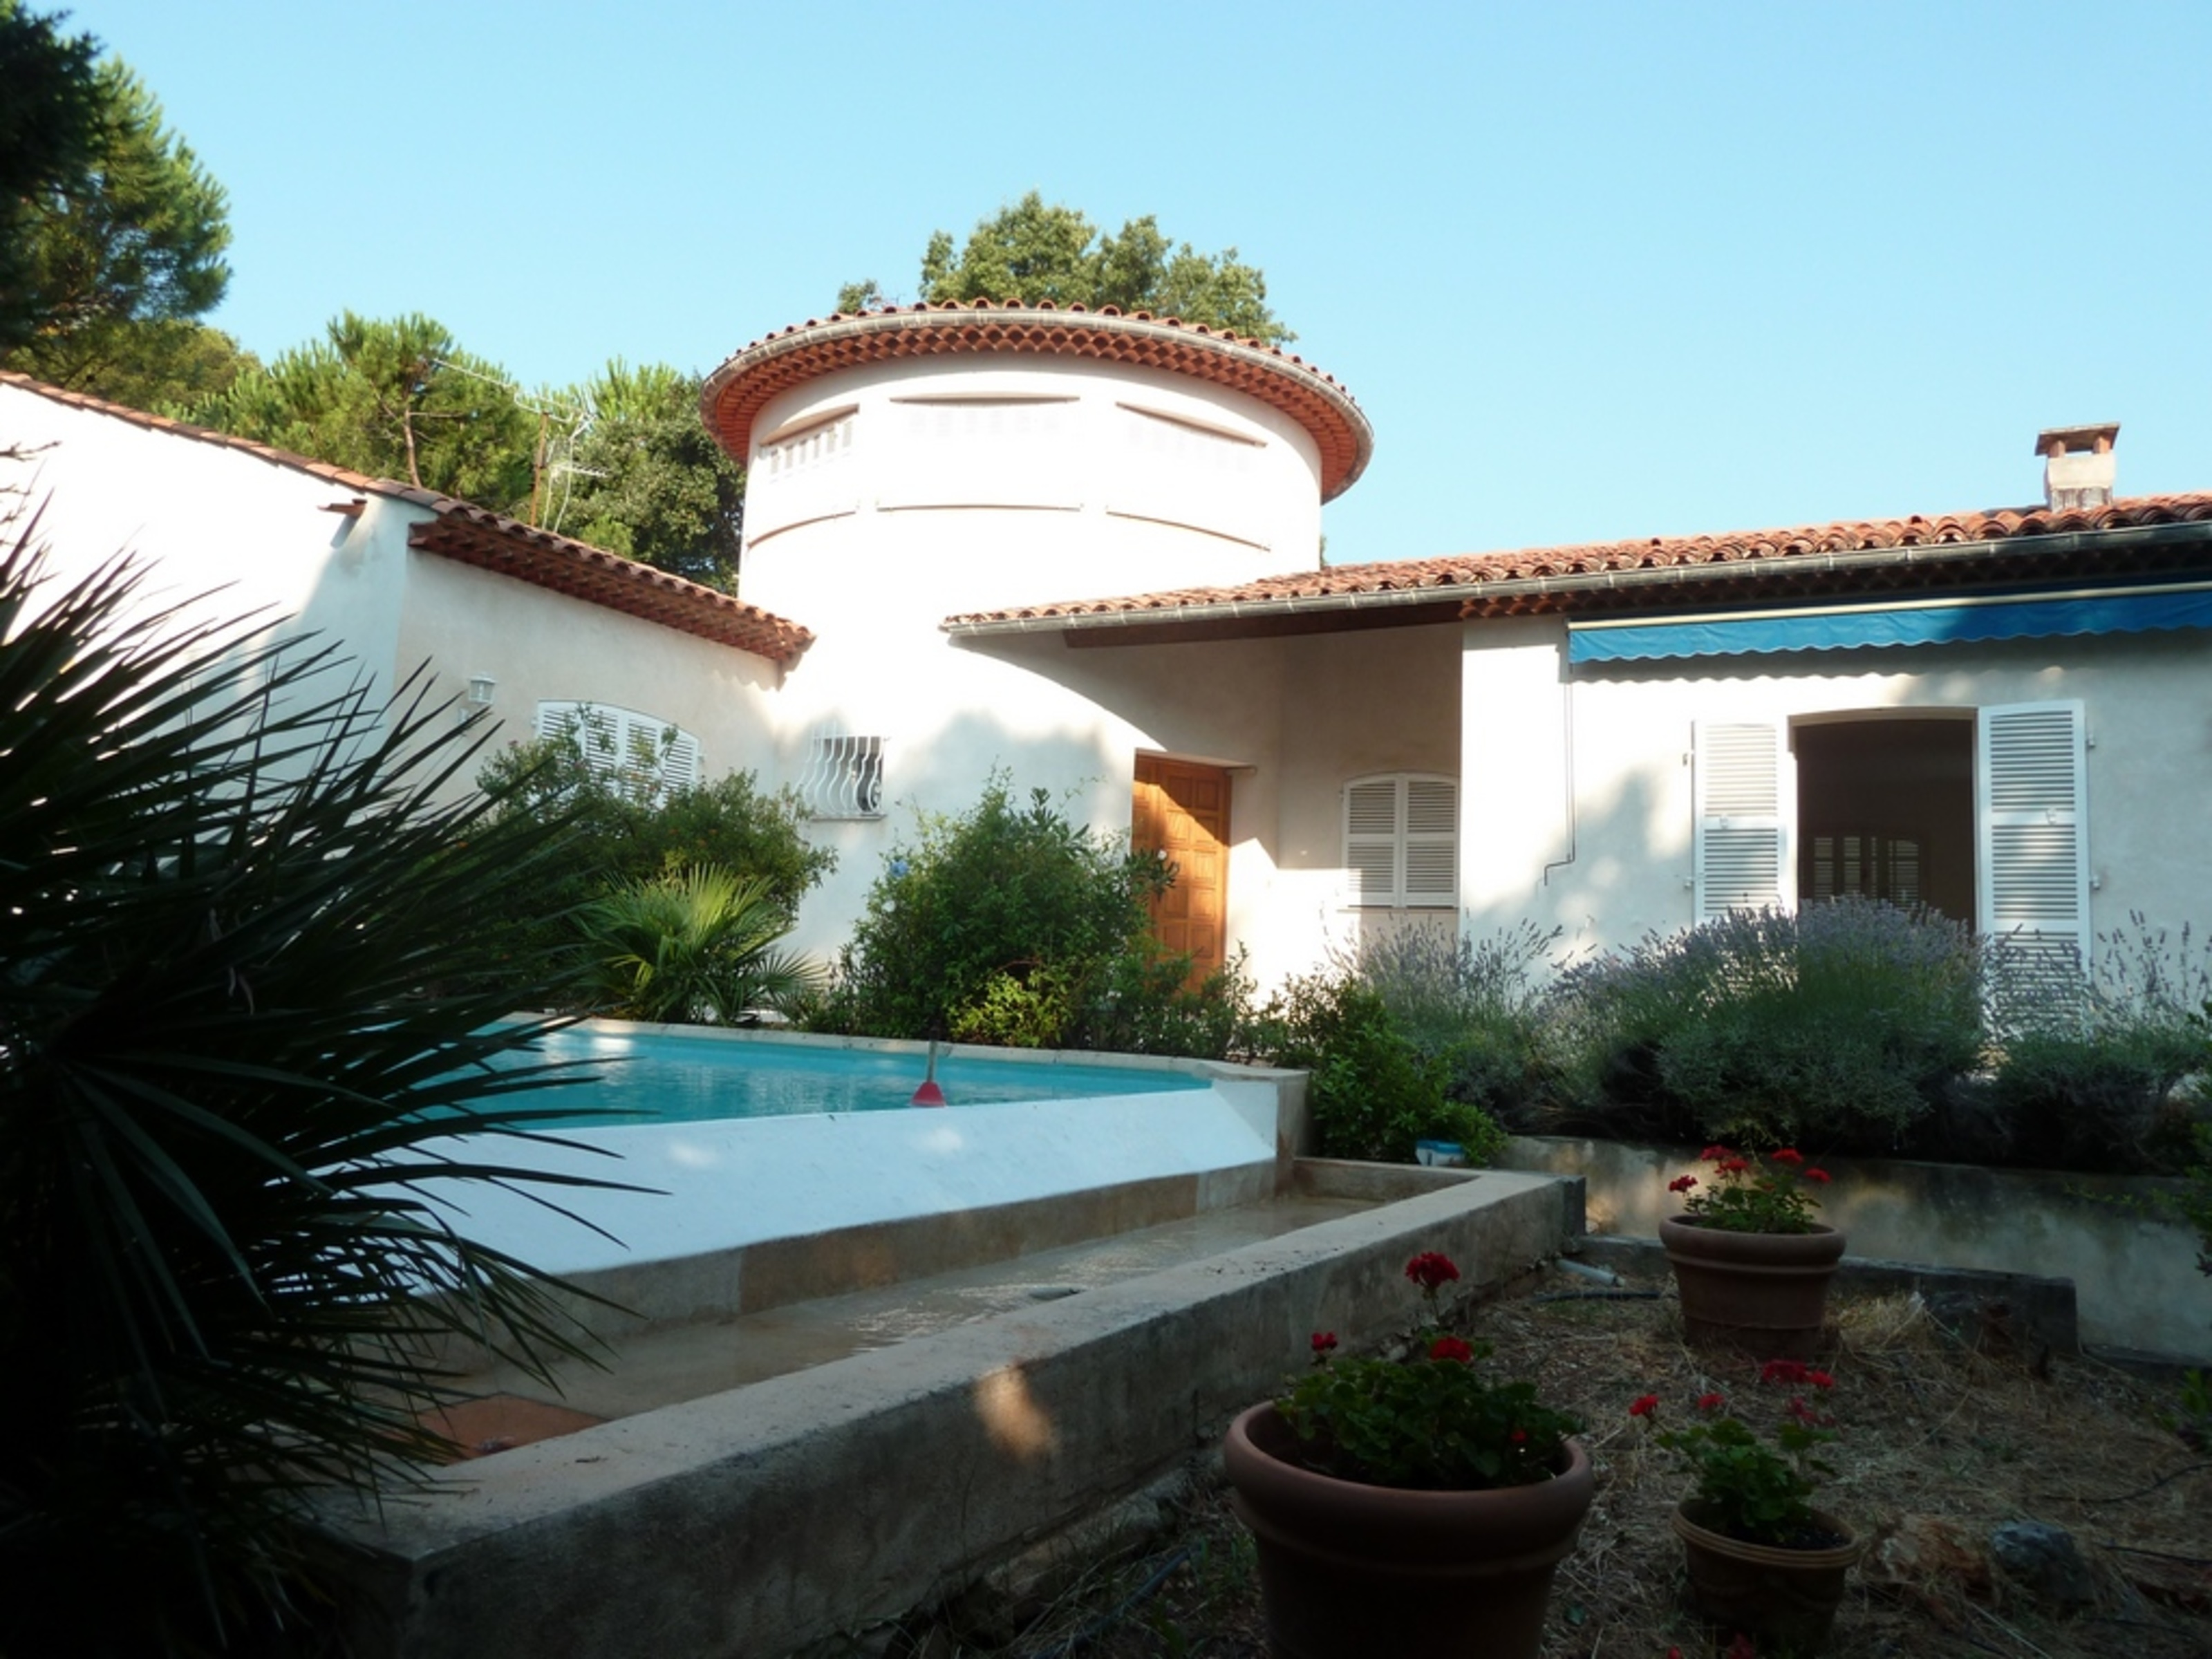 Single Family Home for Sale at Nice Villa with Sea view Roquebrune Cap Martin Roquebrune Cap Martin, Provence-Alpes-Cote D'Azur 06190 France